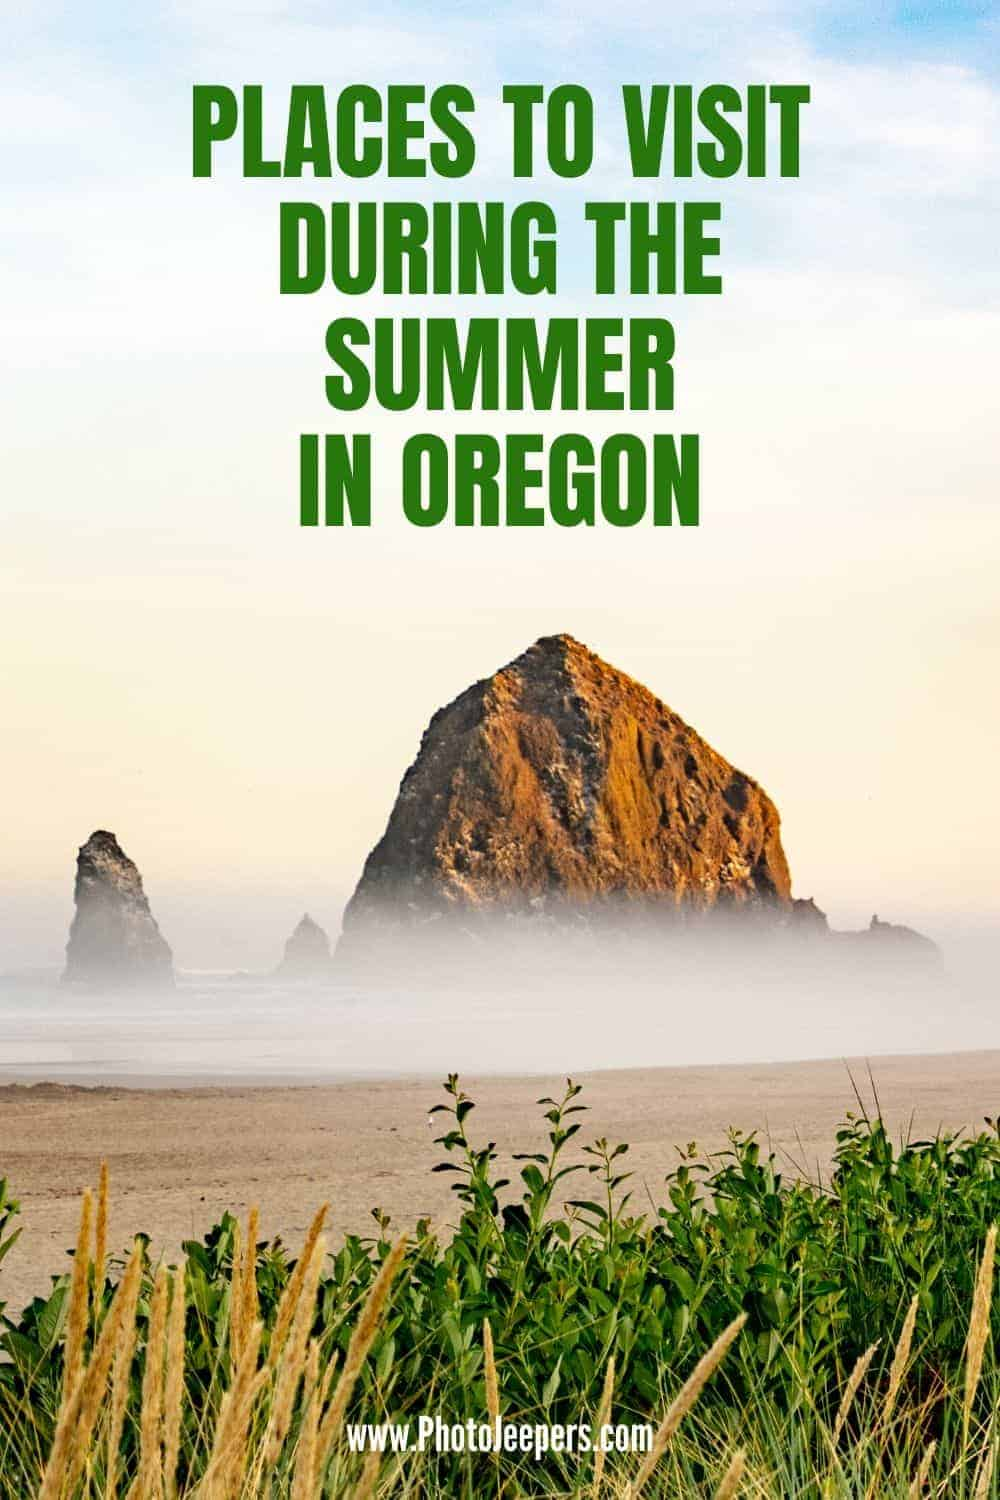 Fun things to do in Oregon in the summer: explore the coastal beaches of Oregon, hike the trails in Oregon, enjoy lake activities in Oregon, visit the town in Oregon. #oregon #portland #summervacation #photojeepers